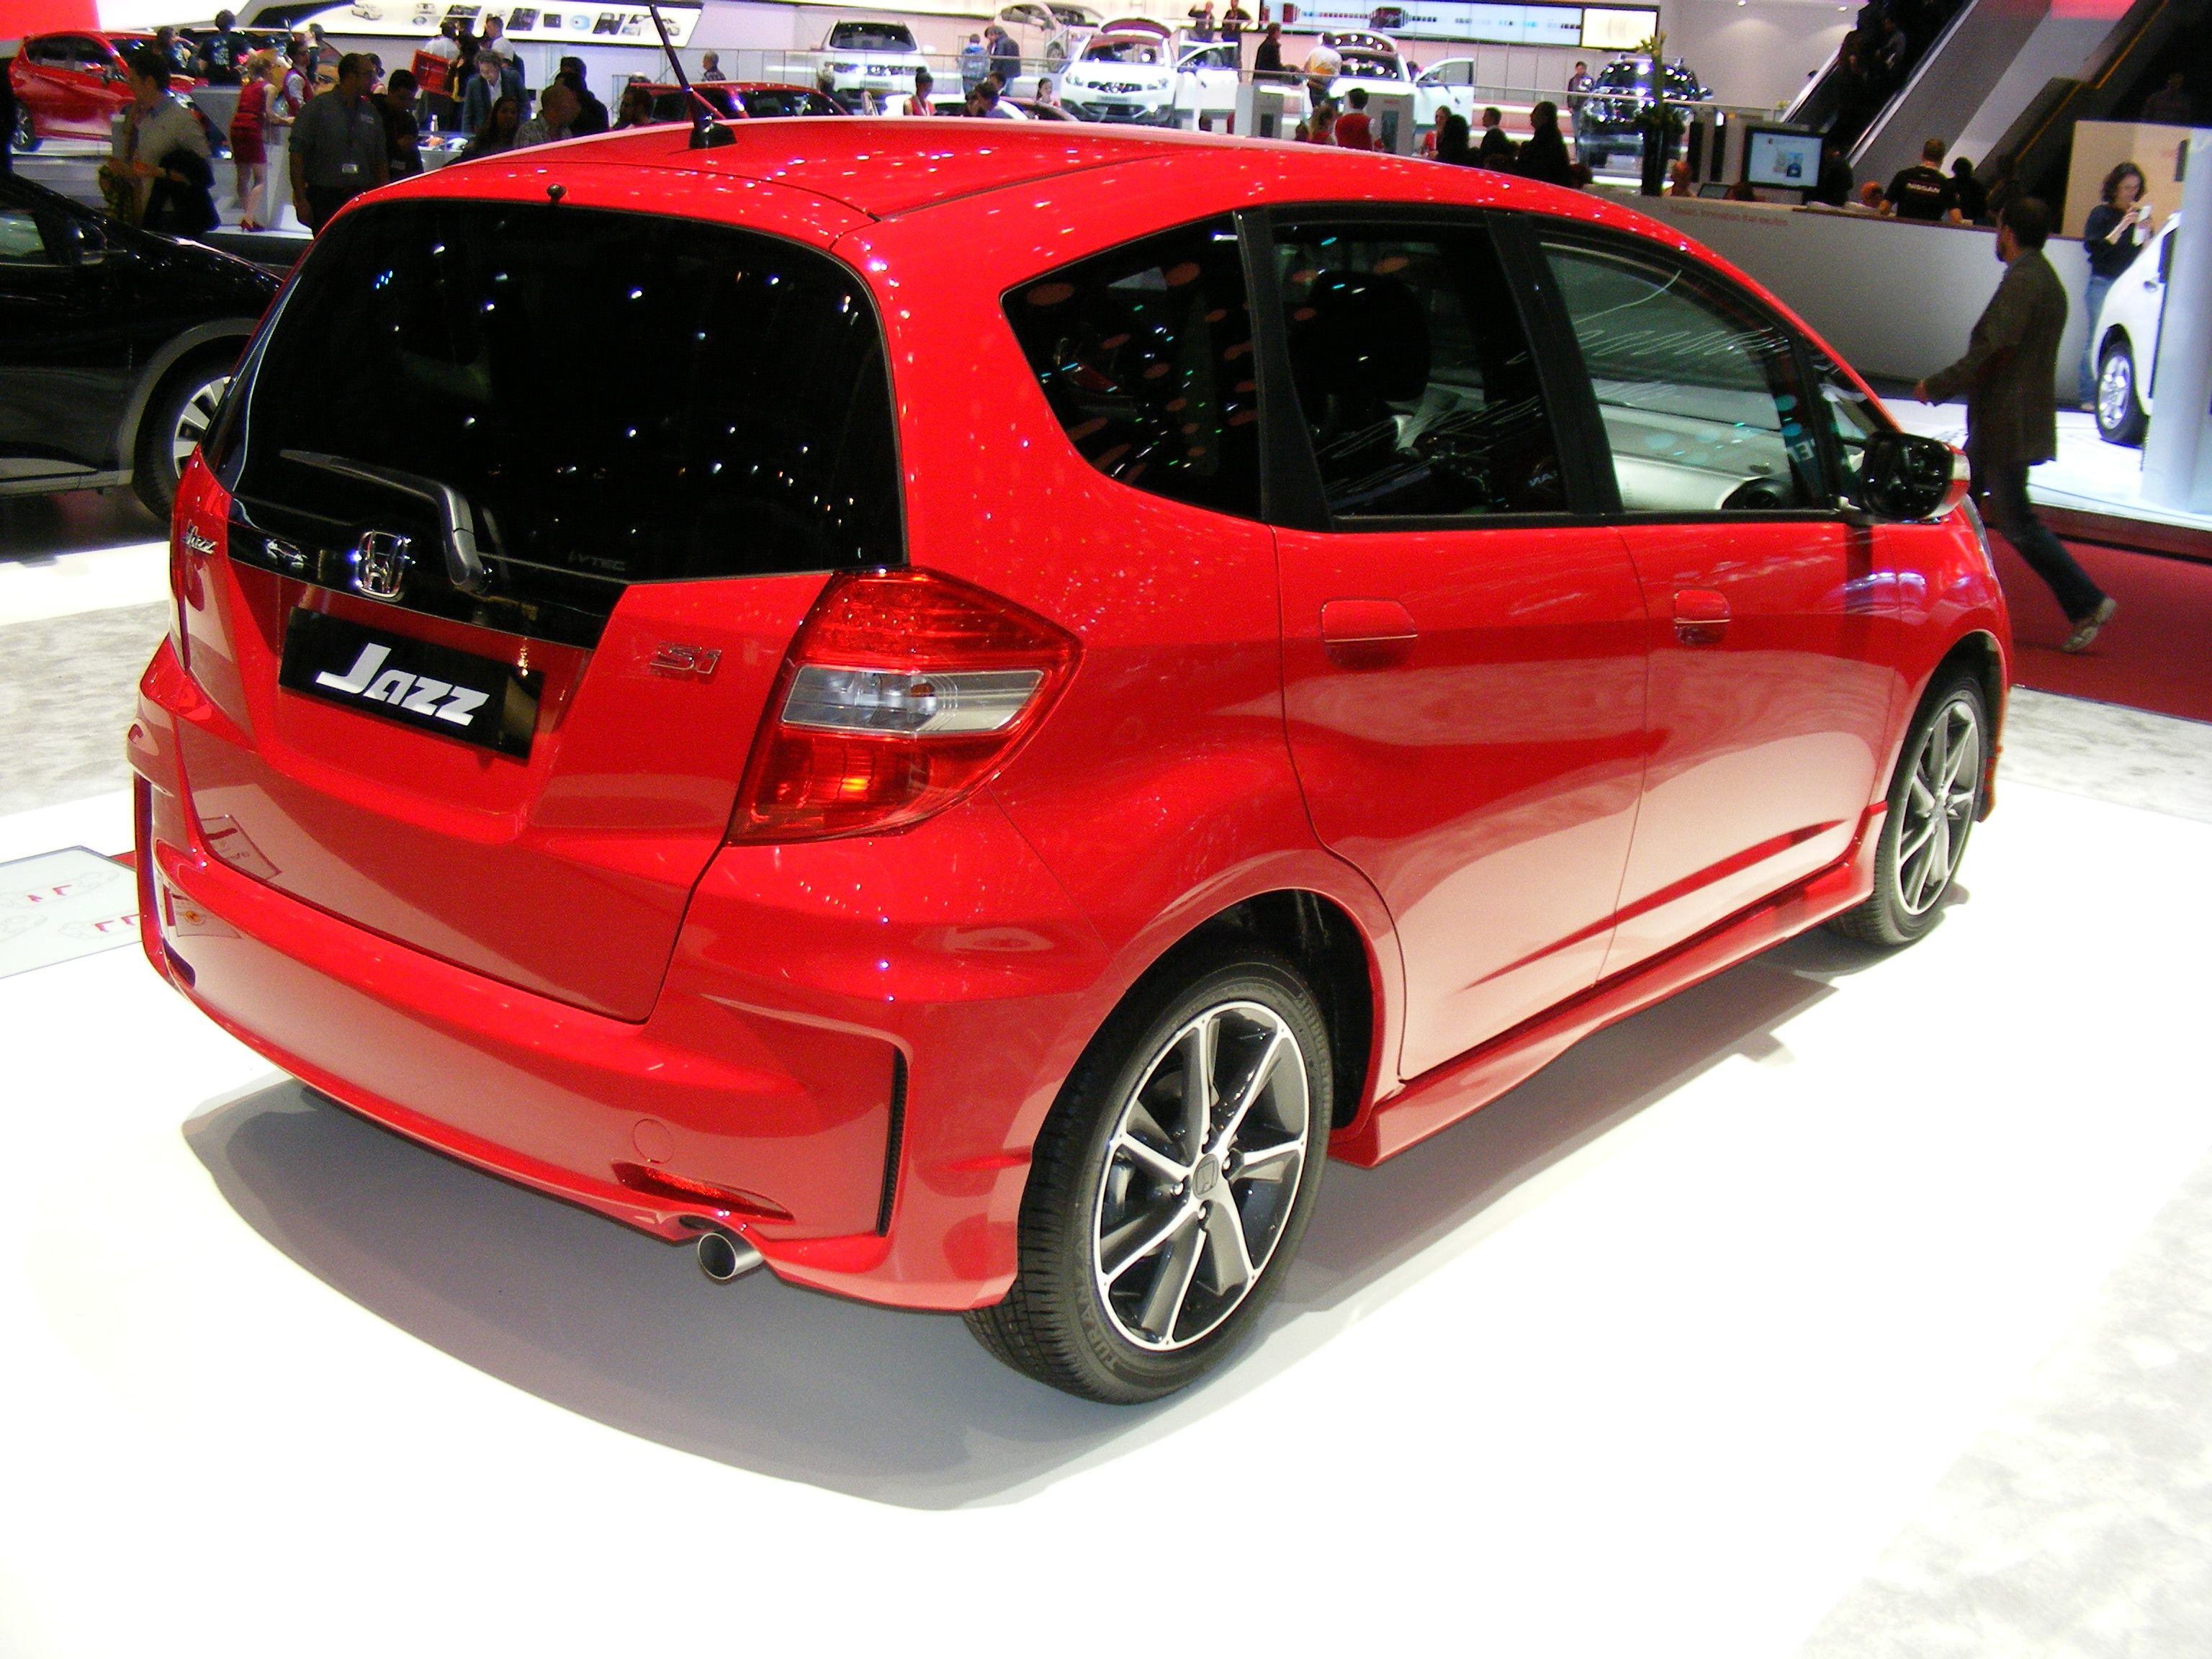 98fafa3412363e965de5f109b327dc4e Cool Review About Honda Fit Pictures with Extraordinary Images Cars Review